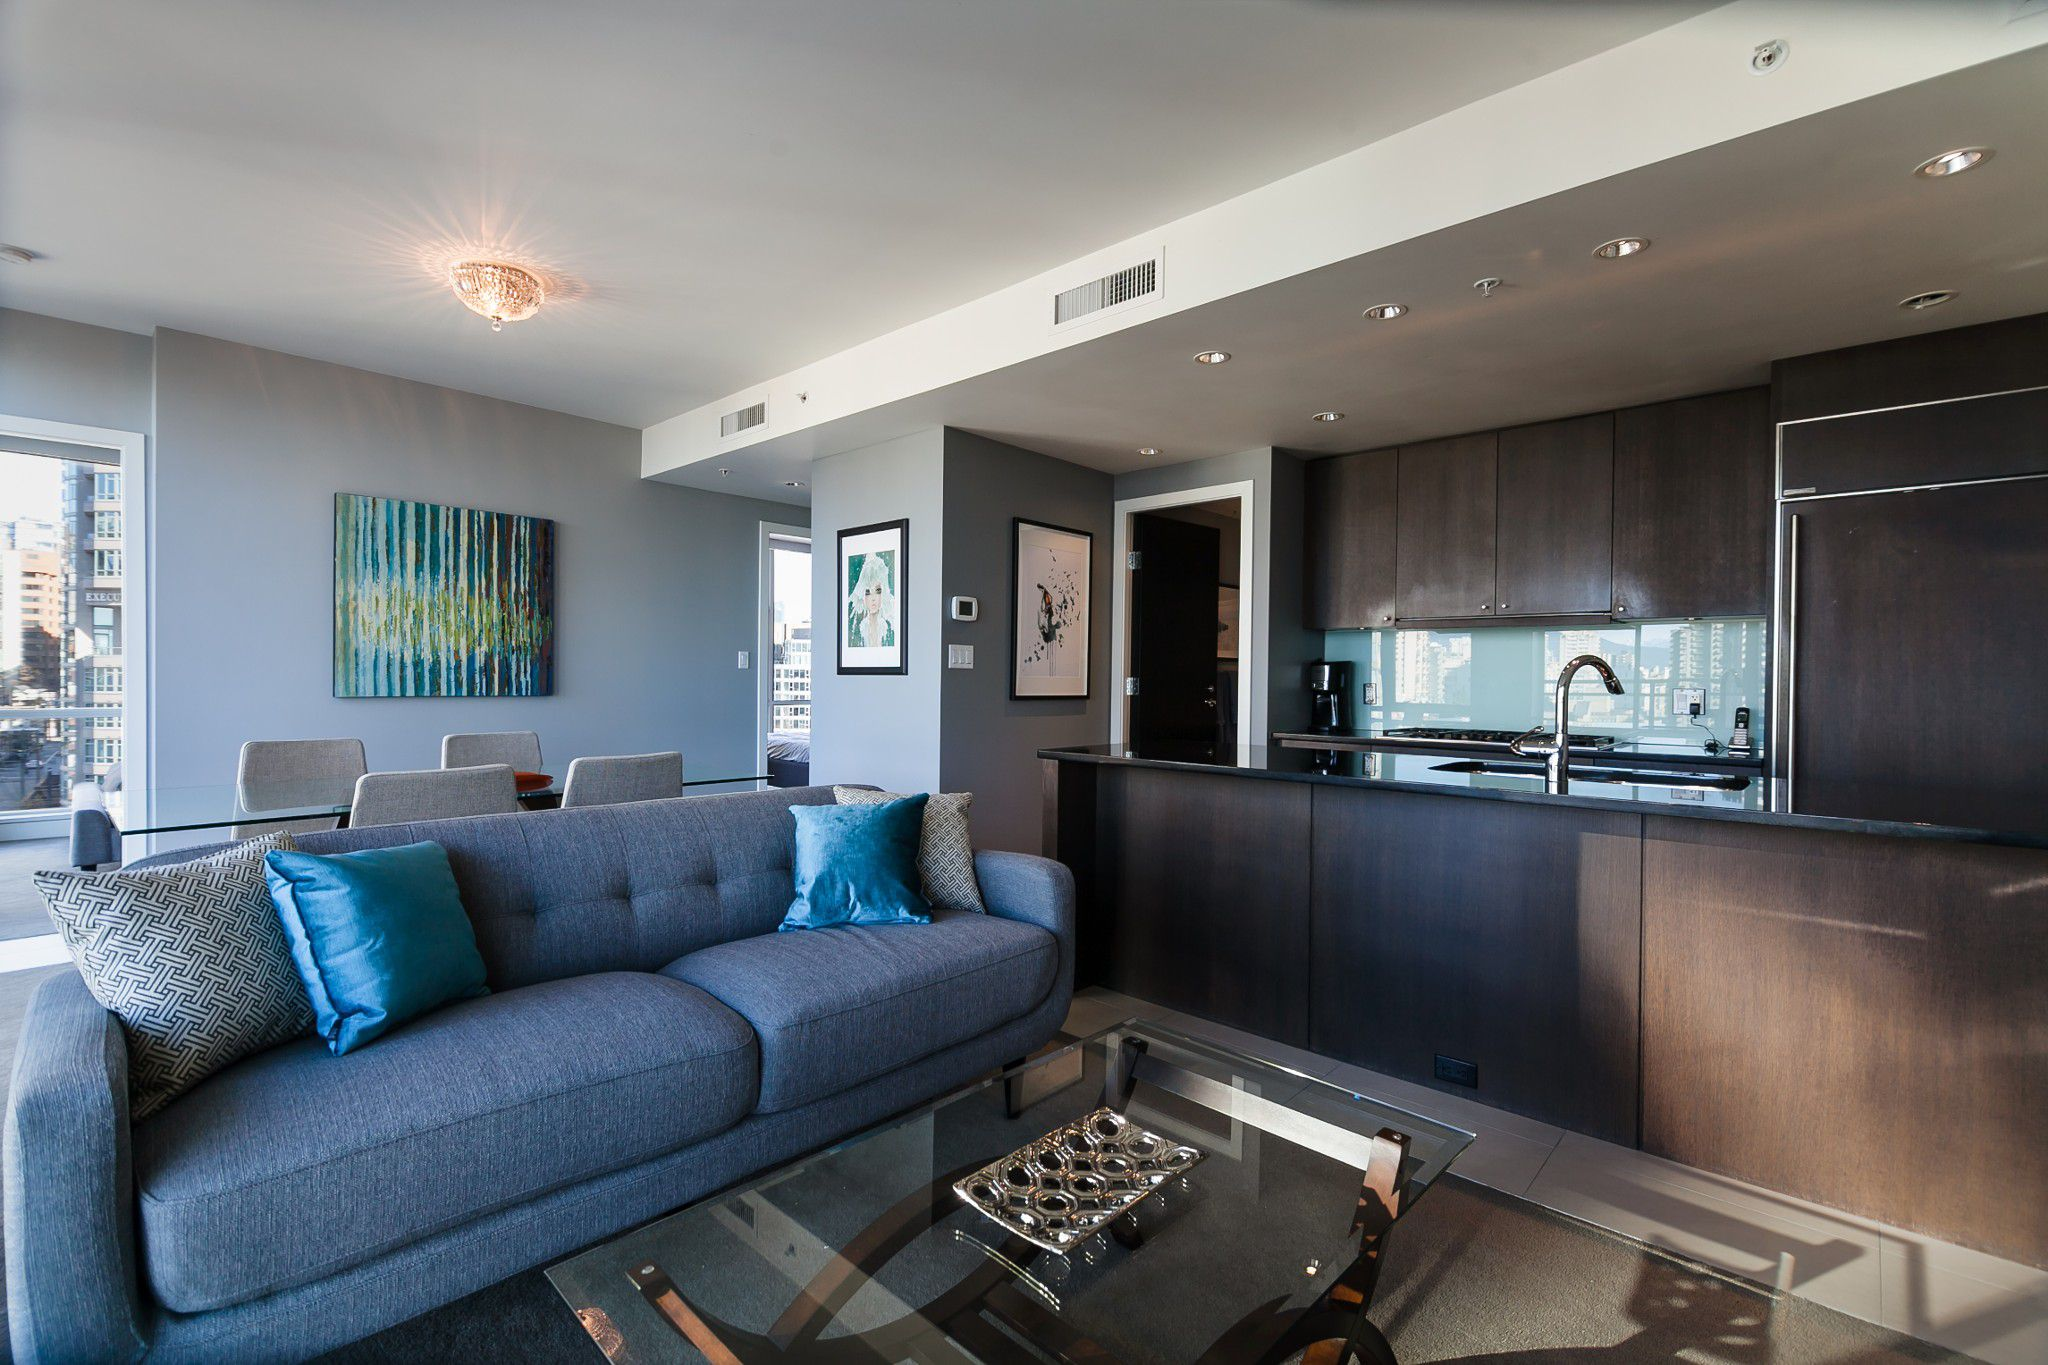 Main Photo: 1455 Howe st in Vancouver: Condo for lease